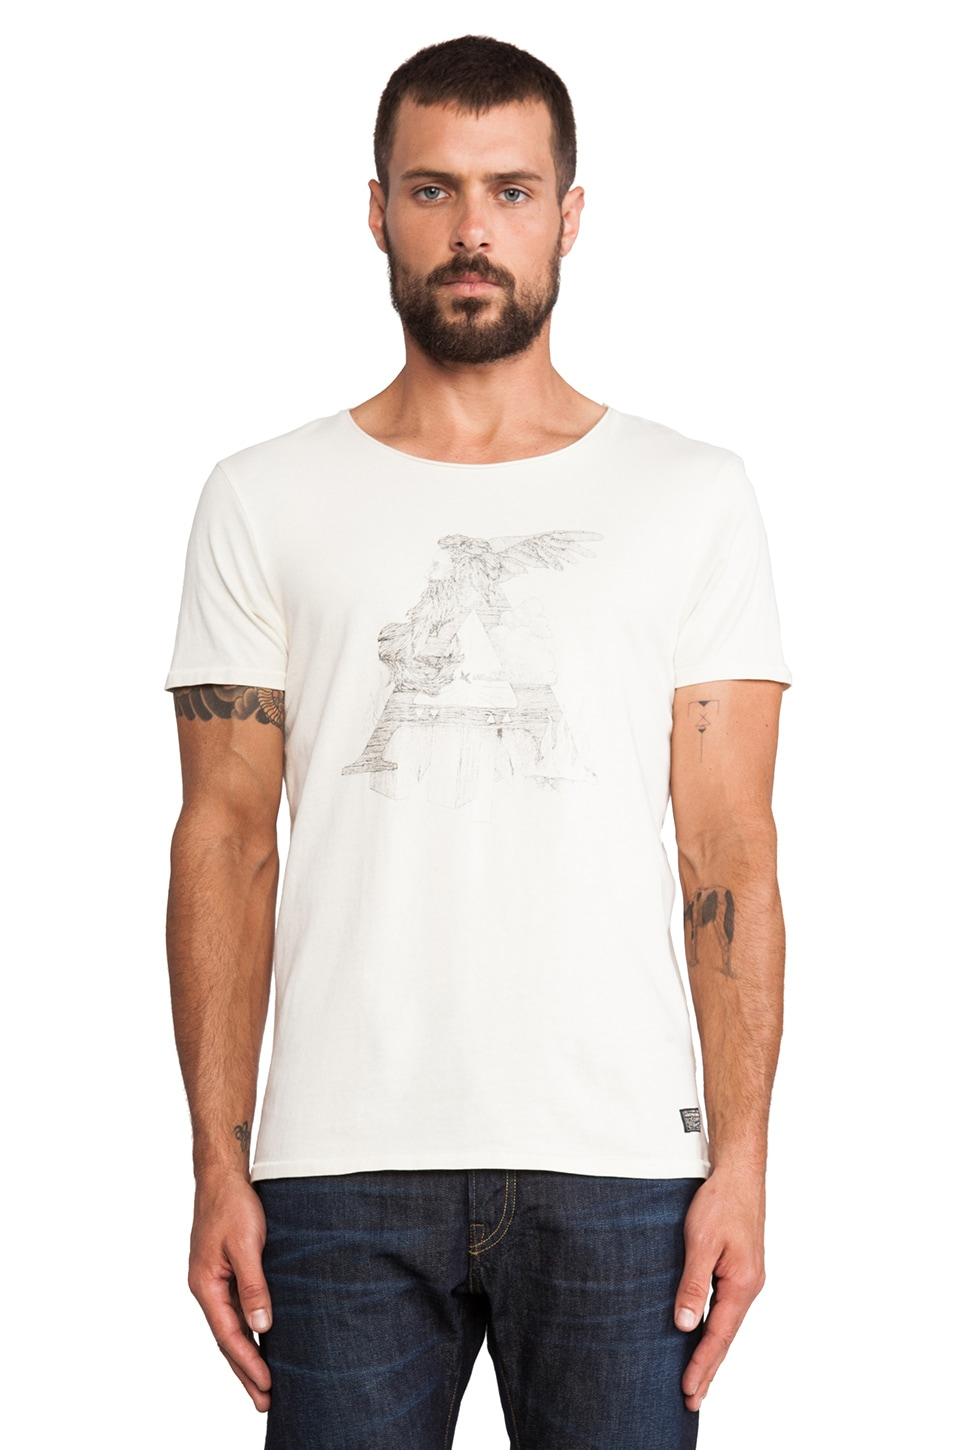 Scotch & Soda Amsterdams Blauw Alchemy Concept Tee in White